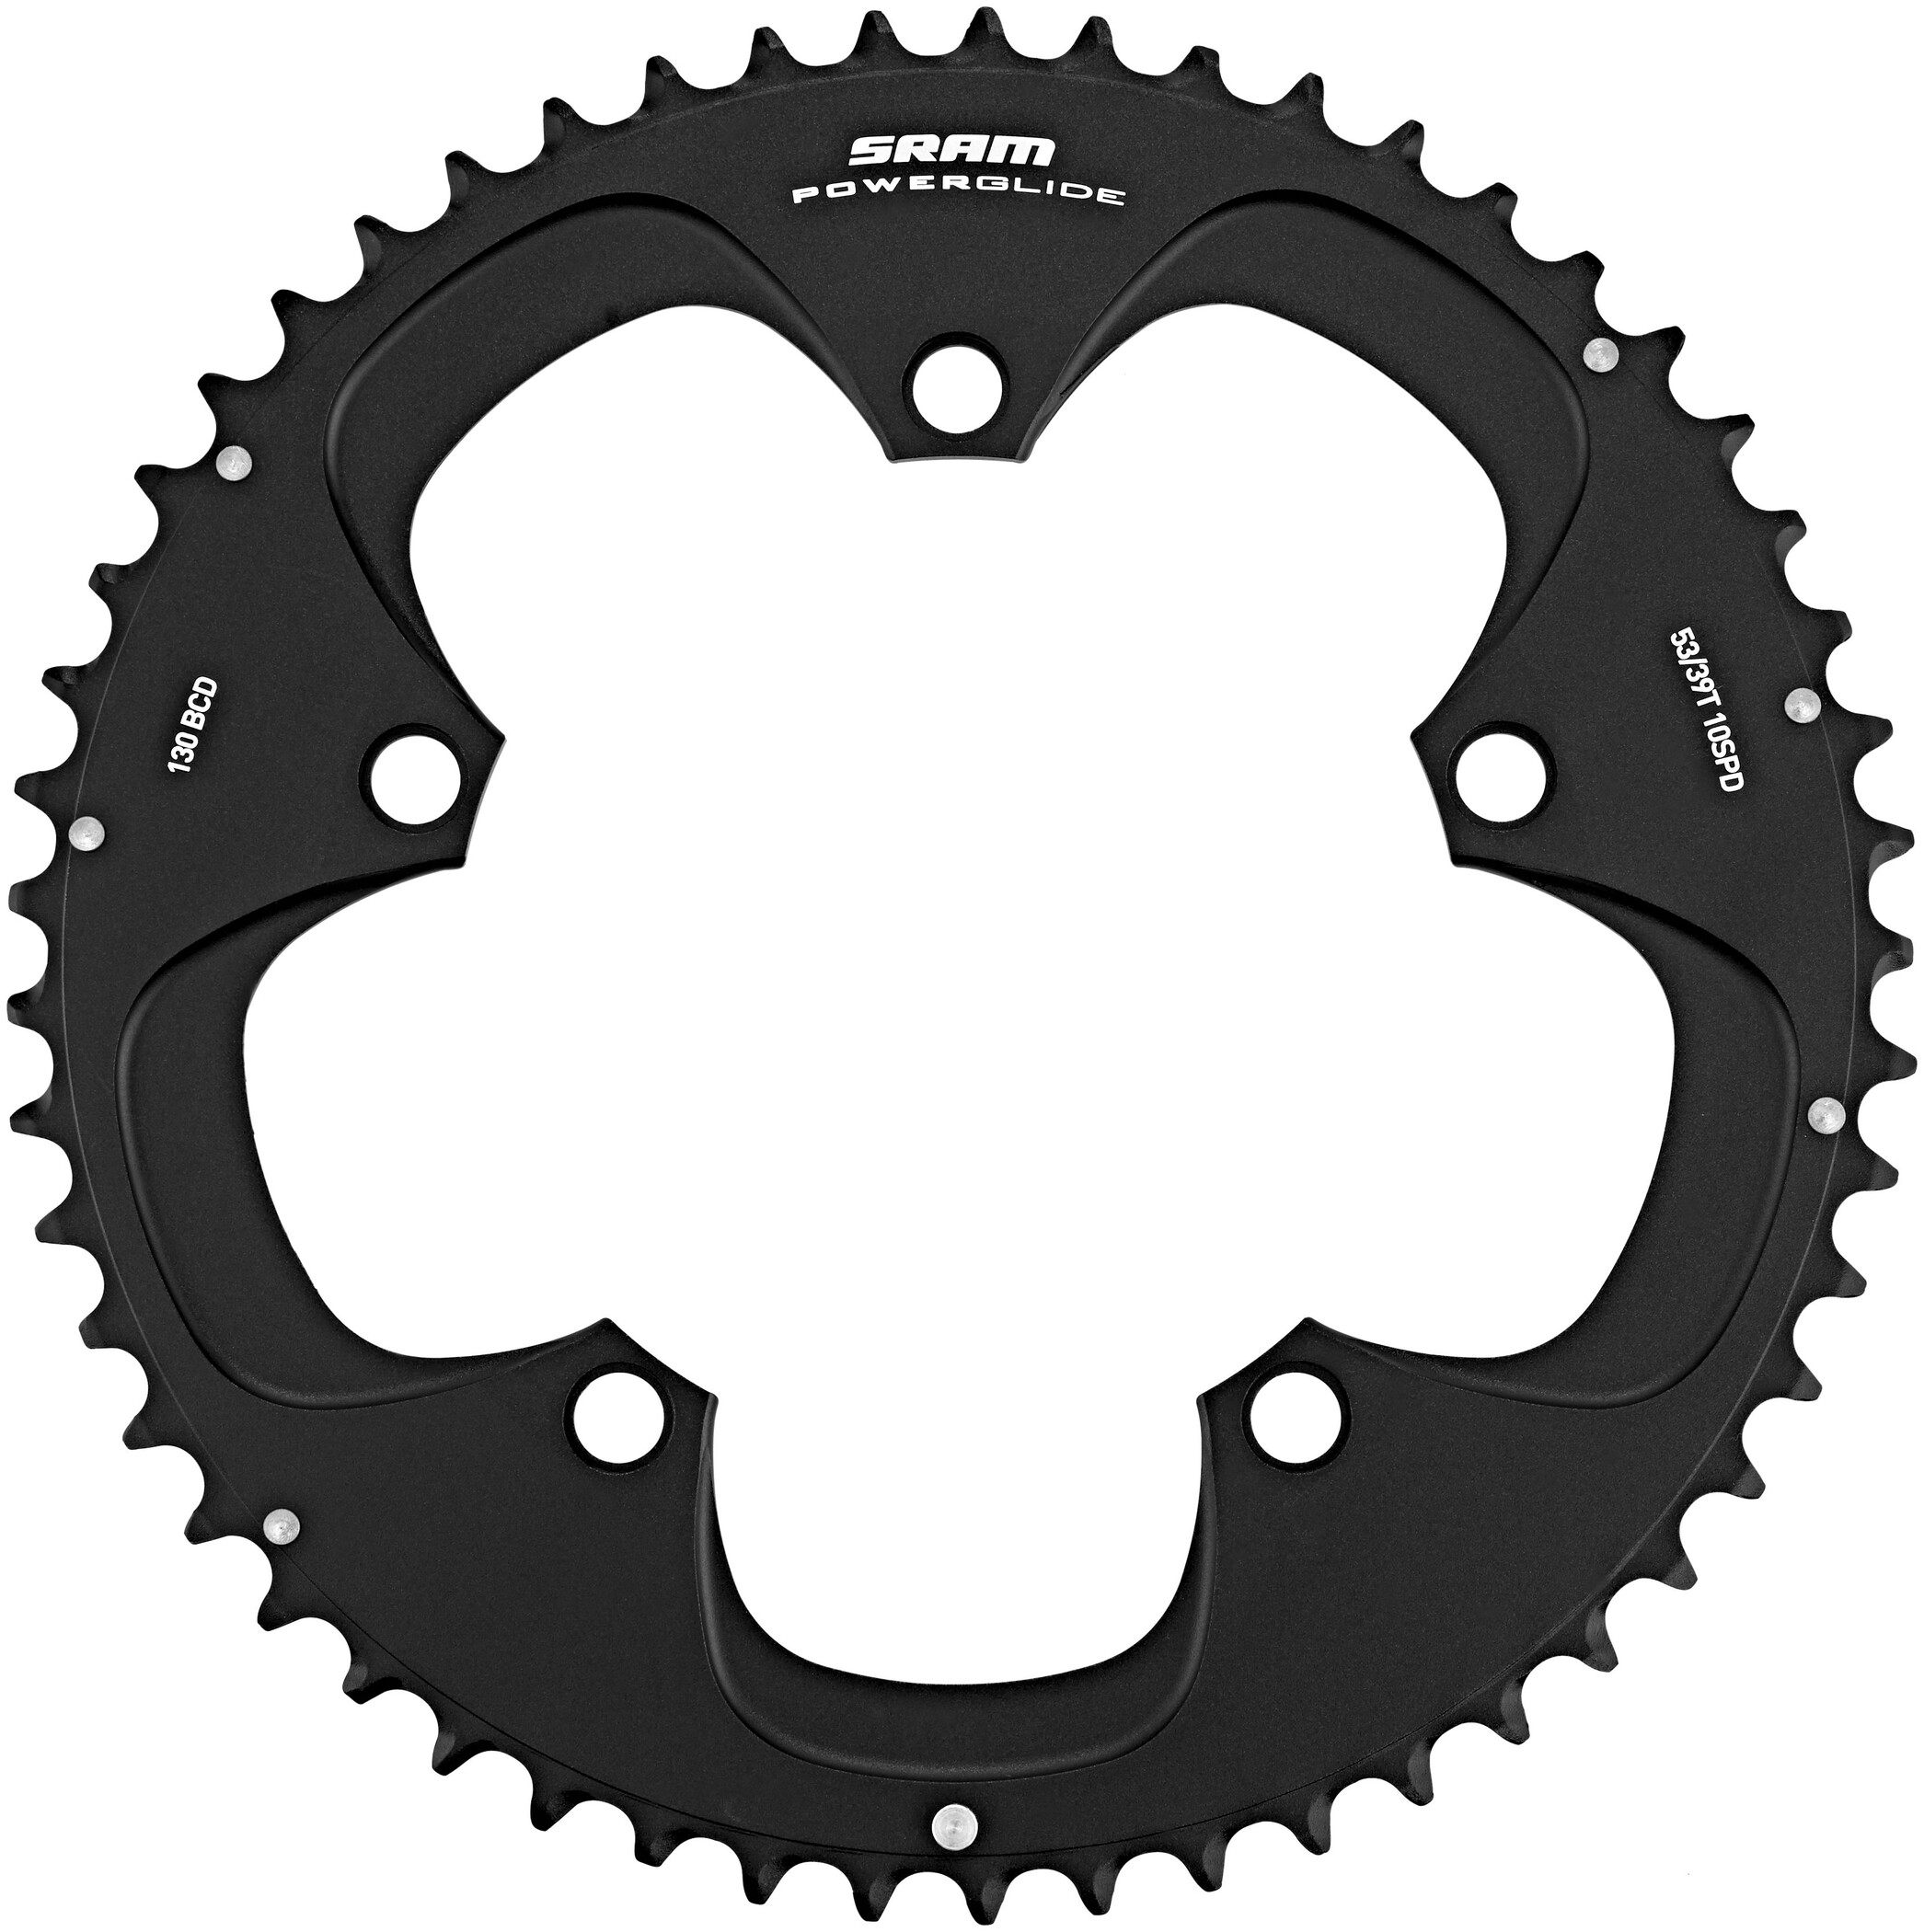 SRAM Road Red Klinge 10-speed 130 mm, matte black (2019) | chainrings_component